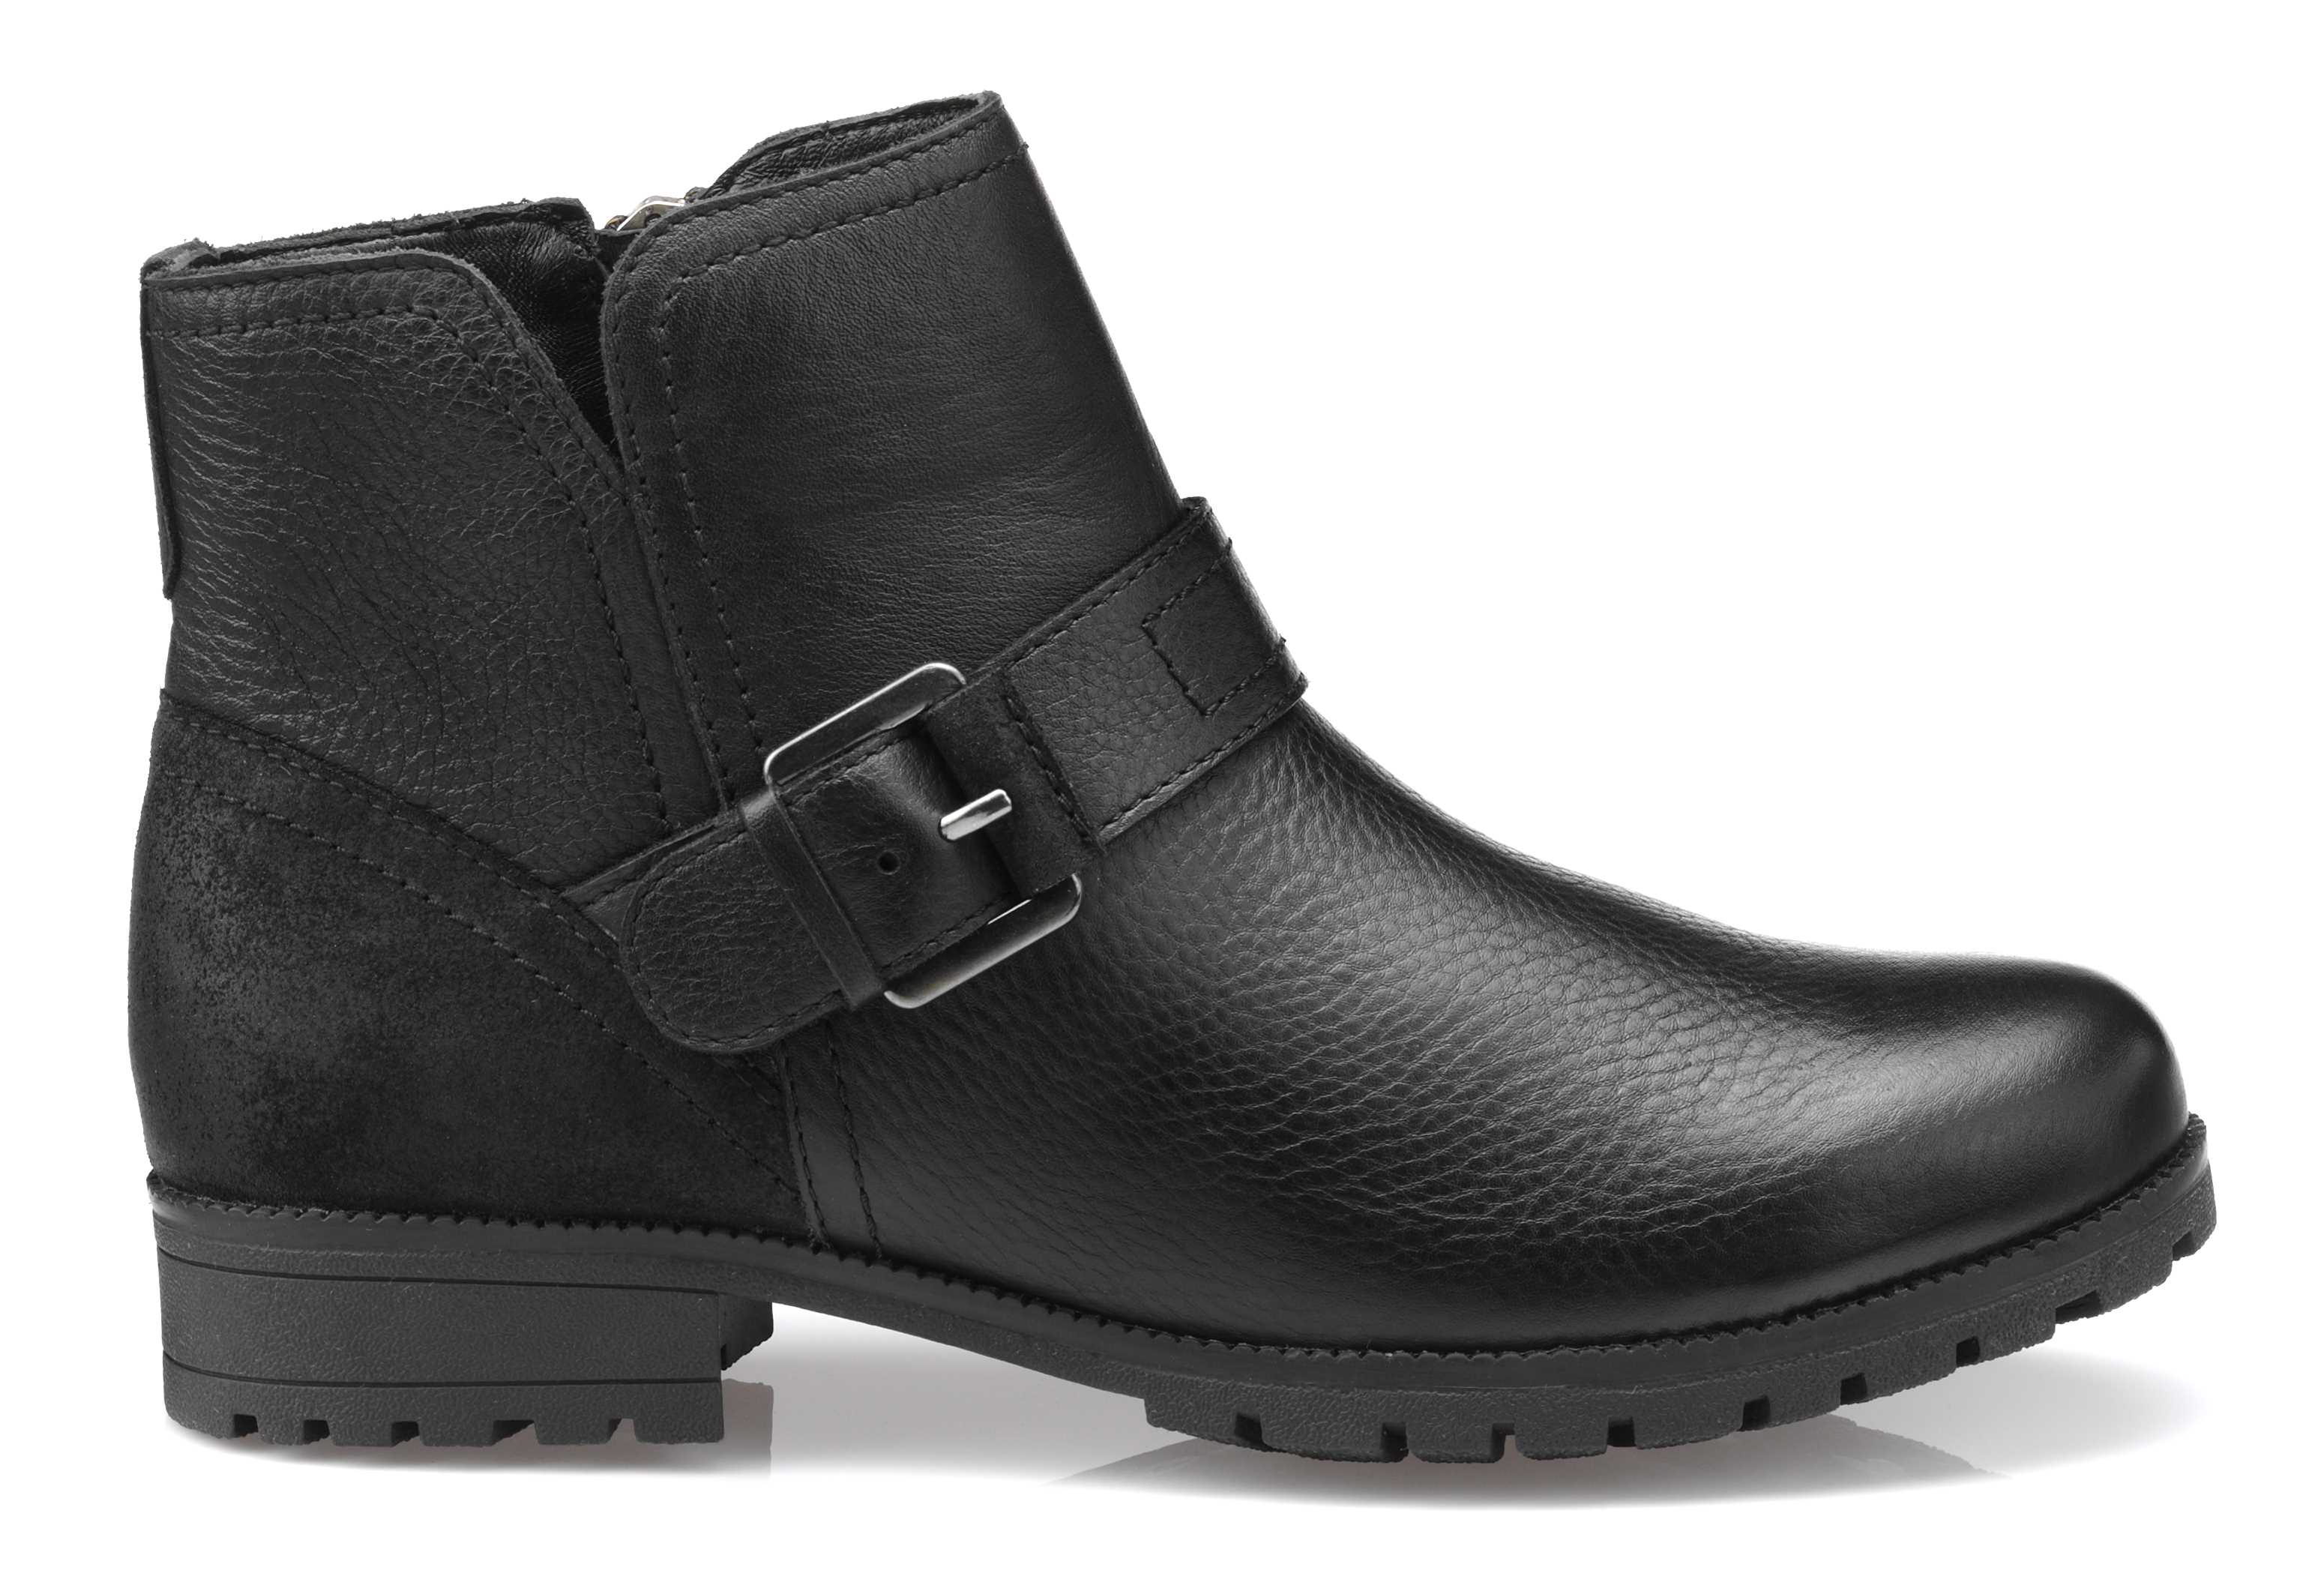 Women's biker boots Lotty in Black